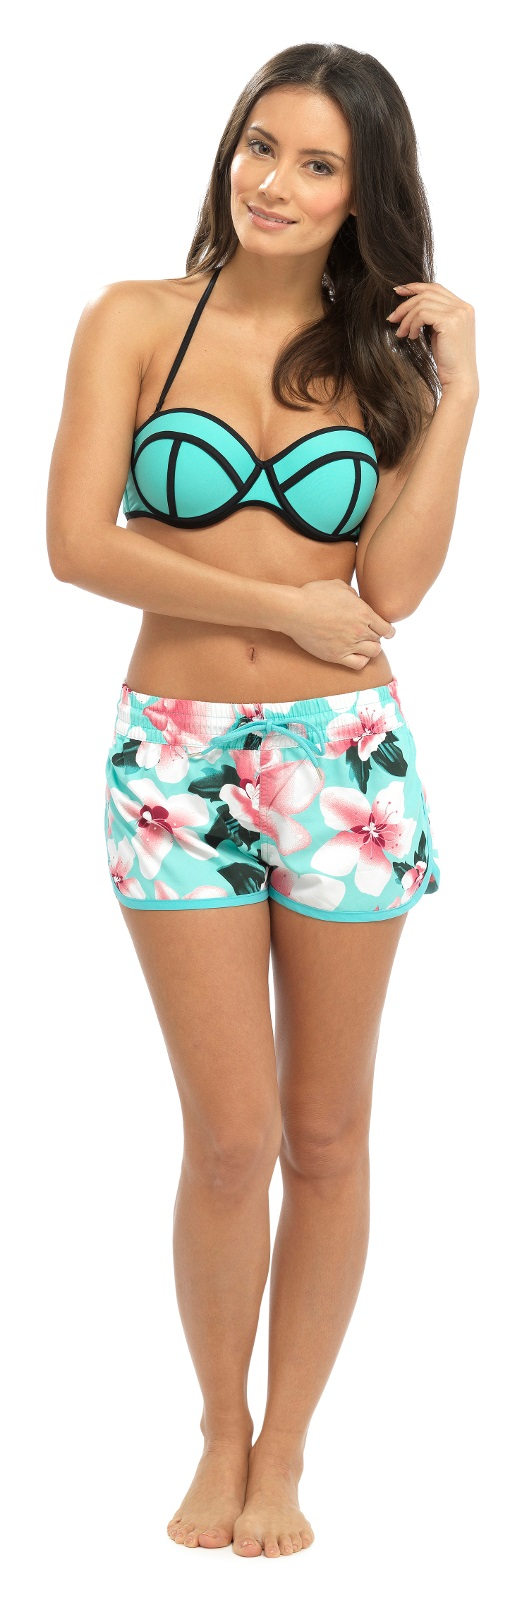 SUMMER WARE LN464 BEACHWEAR LADIES FLOWER FLORAL PRINT BEACH SHORTS